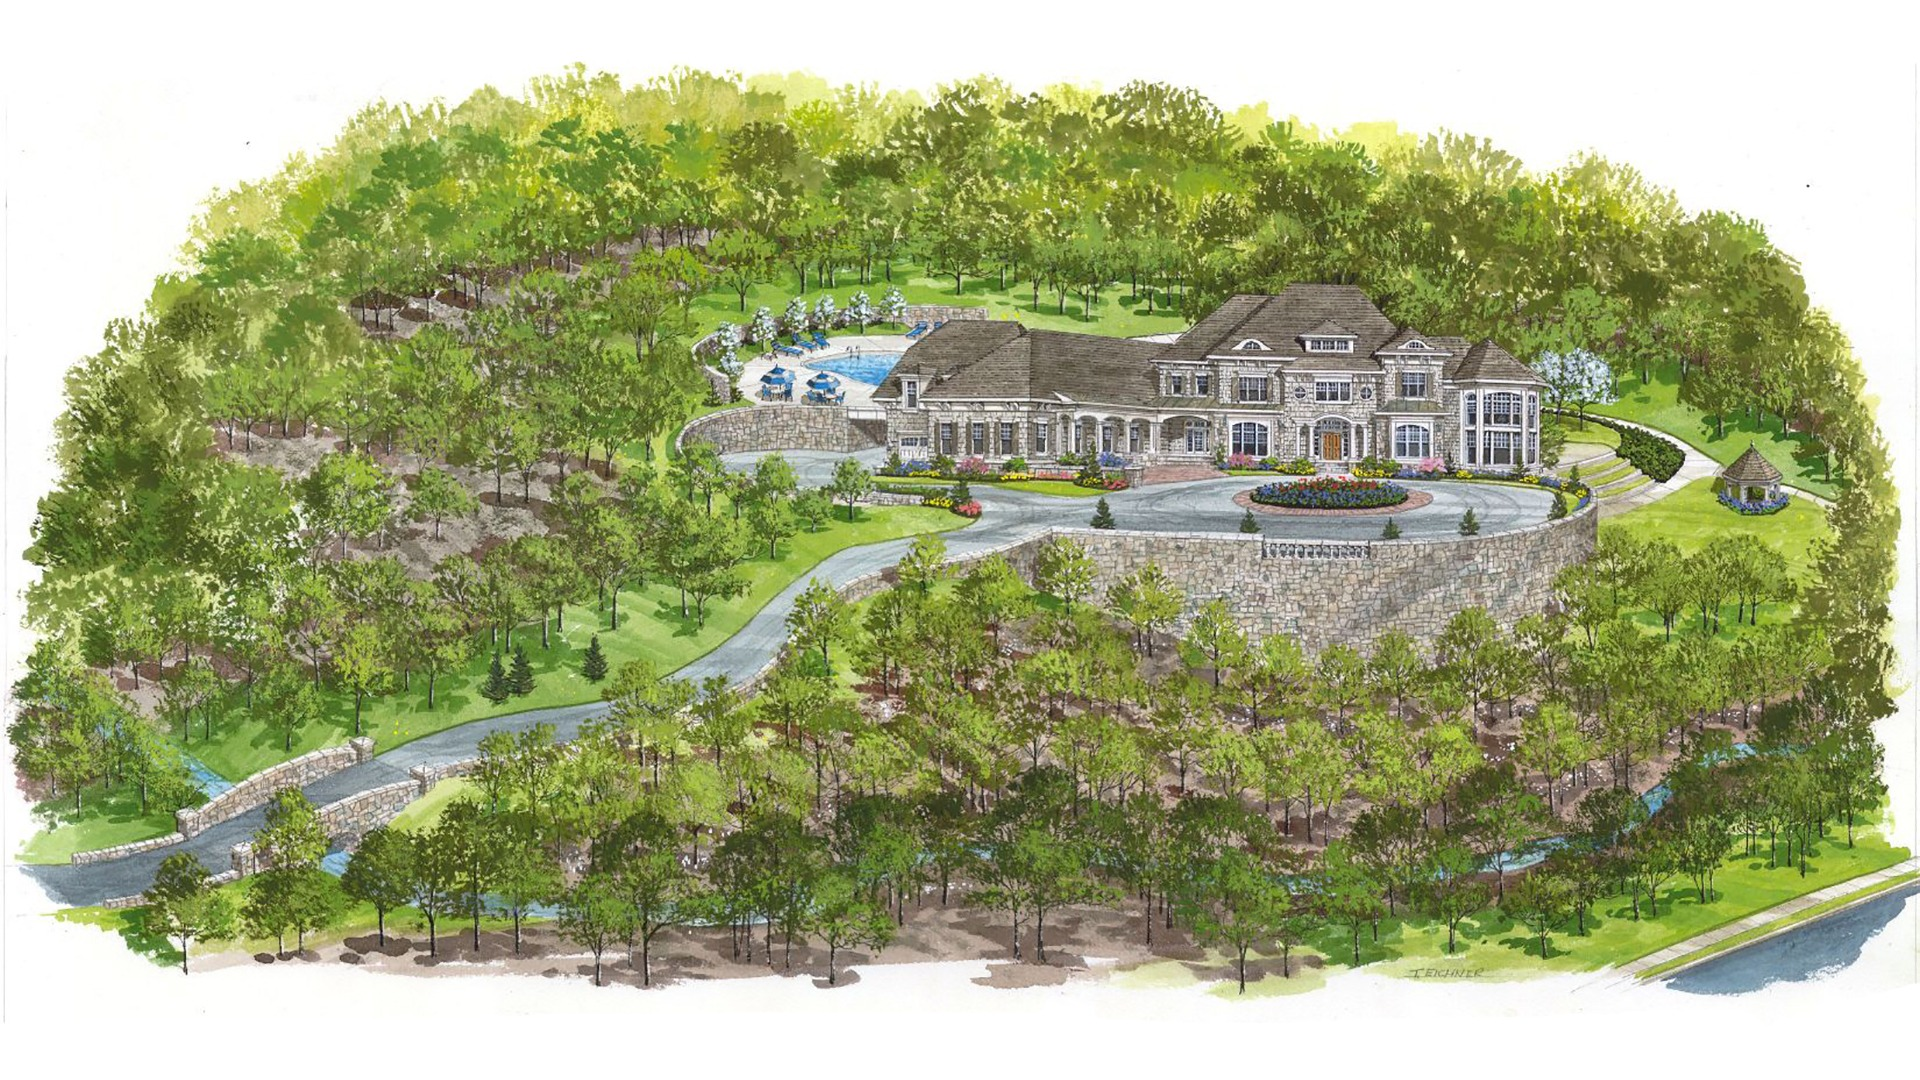 A rendering of a Wentworth from the Reserve at McLean